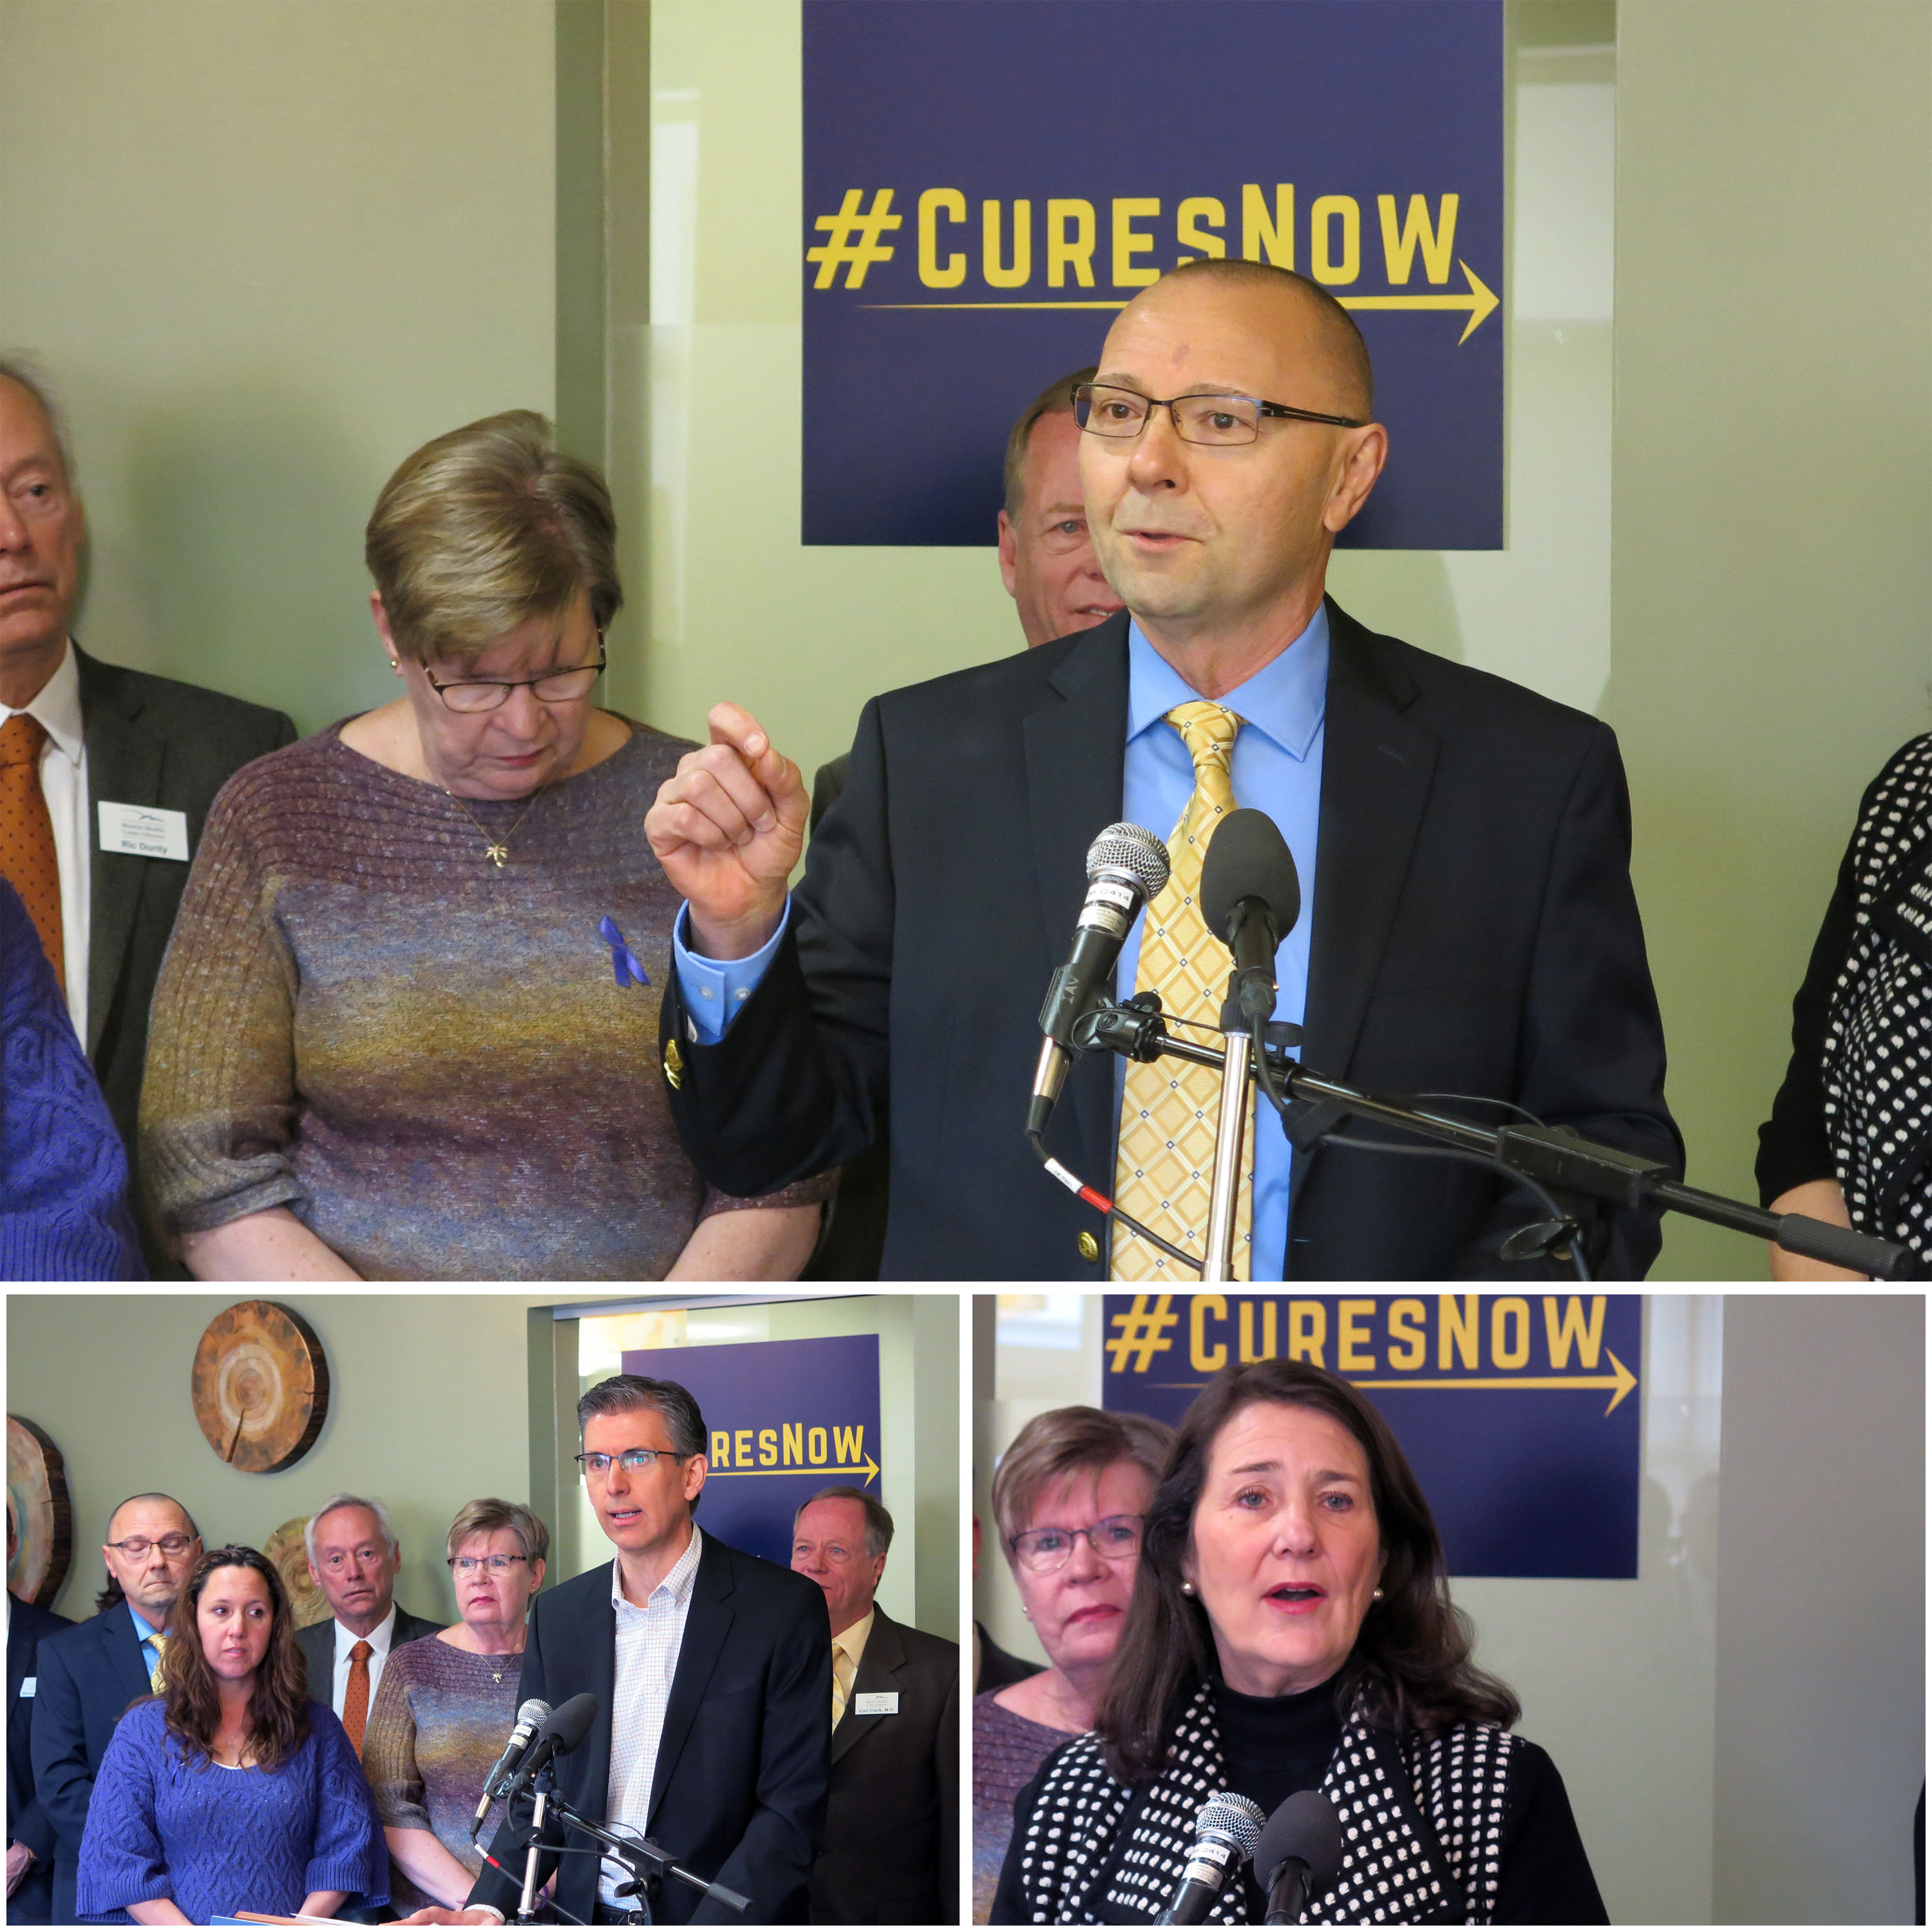 21st Century Cures 2 | News Conference TriptychDec. 3 - JDaley